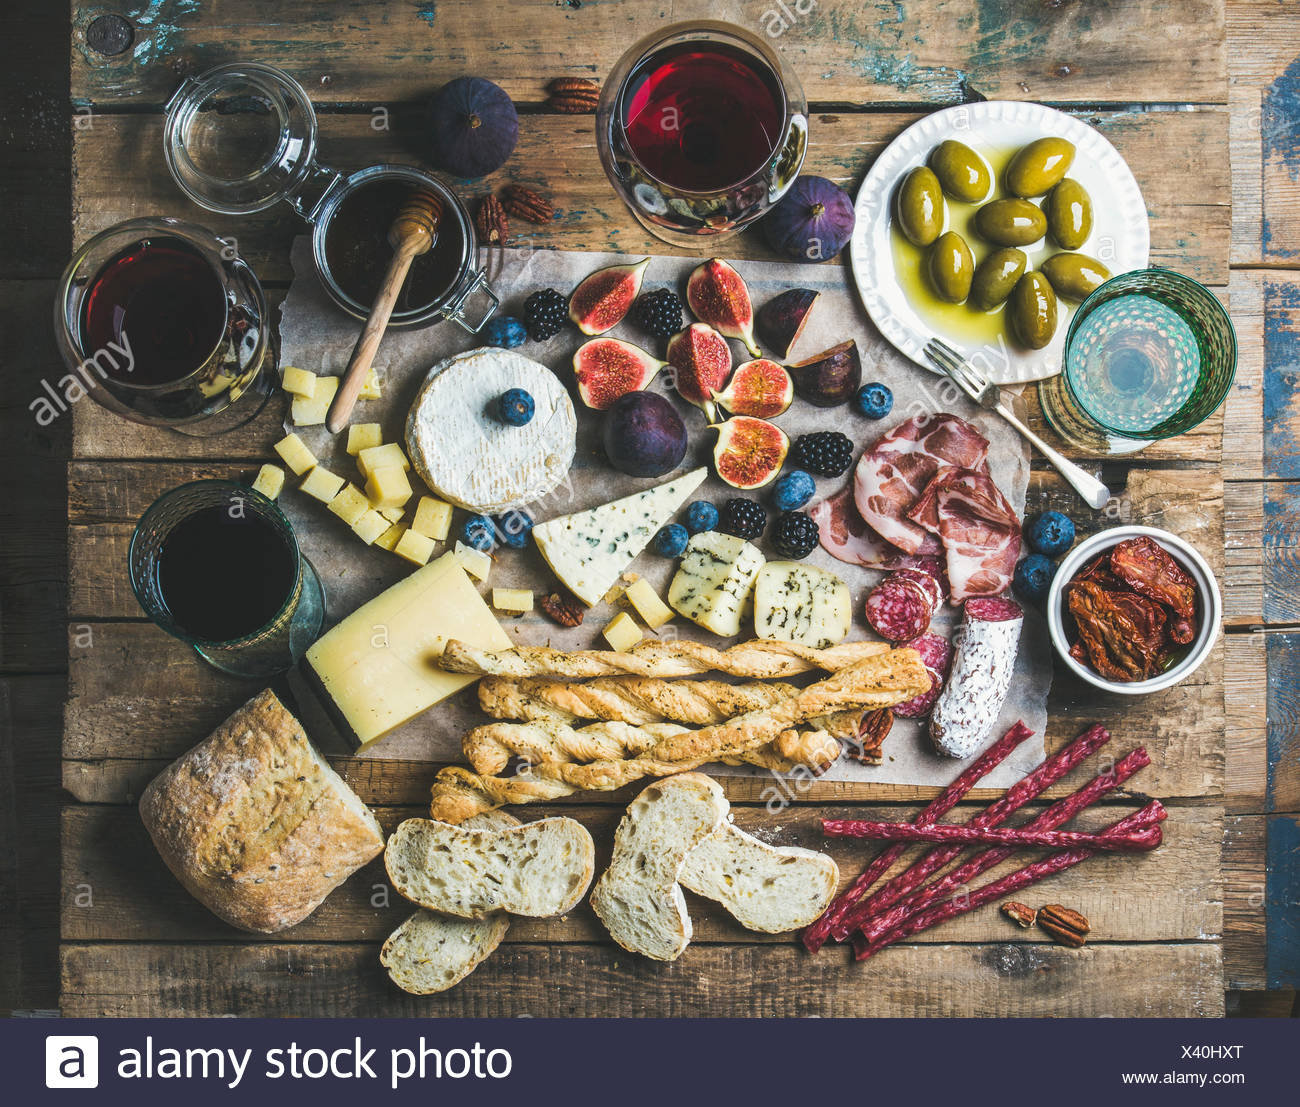 Wine and snack set with various wines in glasses, meat variety, bread, sun-dried tomatoes, honey, green olives, figs, nuts and b - Stock Image